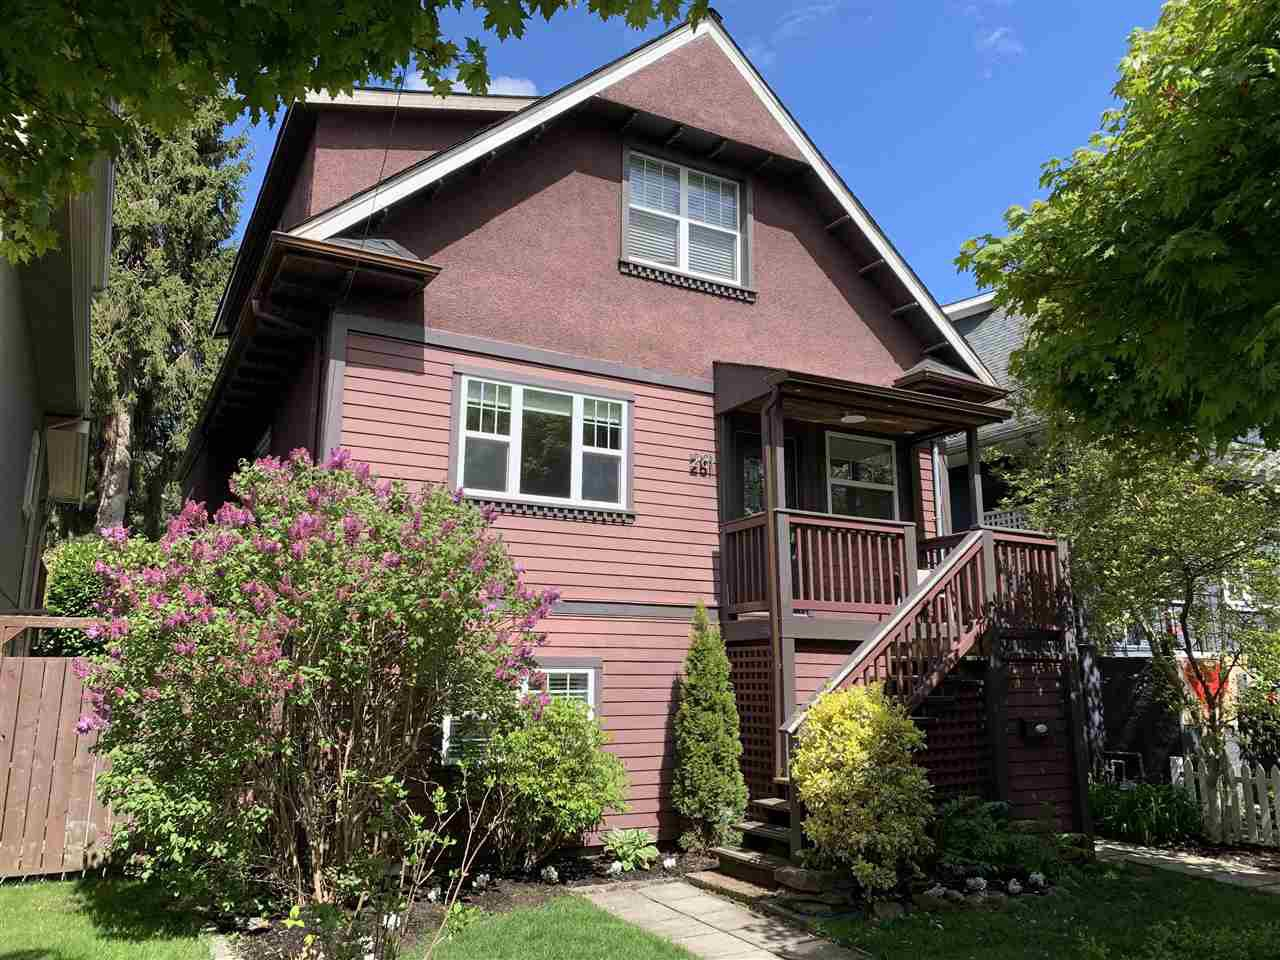 Main Photo: 281 E 32ND Avenue in Vancouver: Main House for sale (Vancouver East)  : MLS®# R2452265